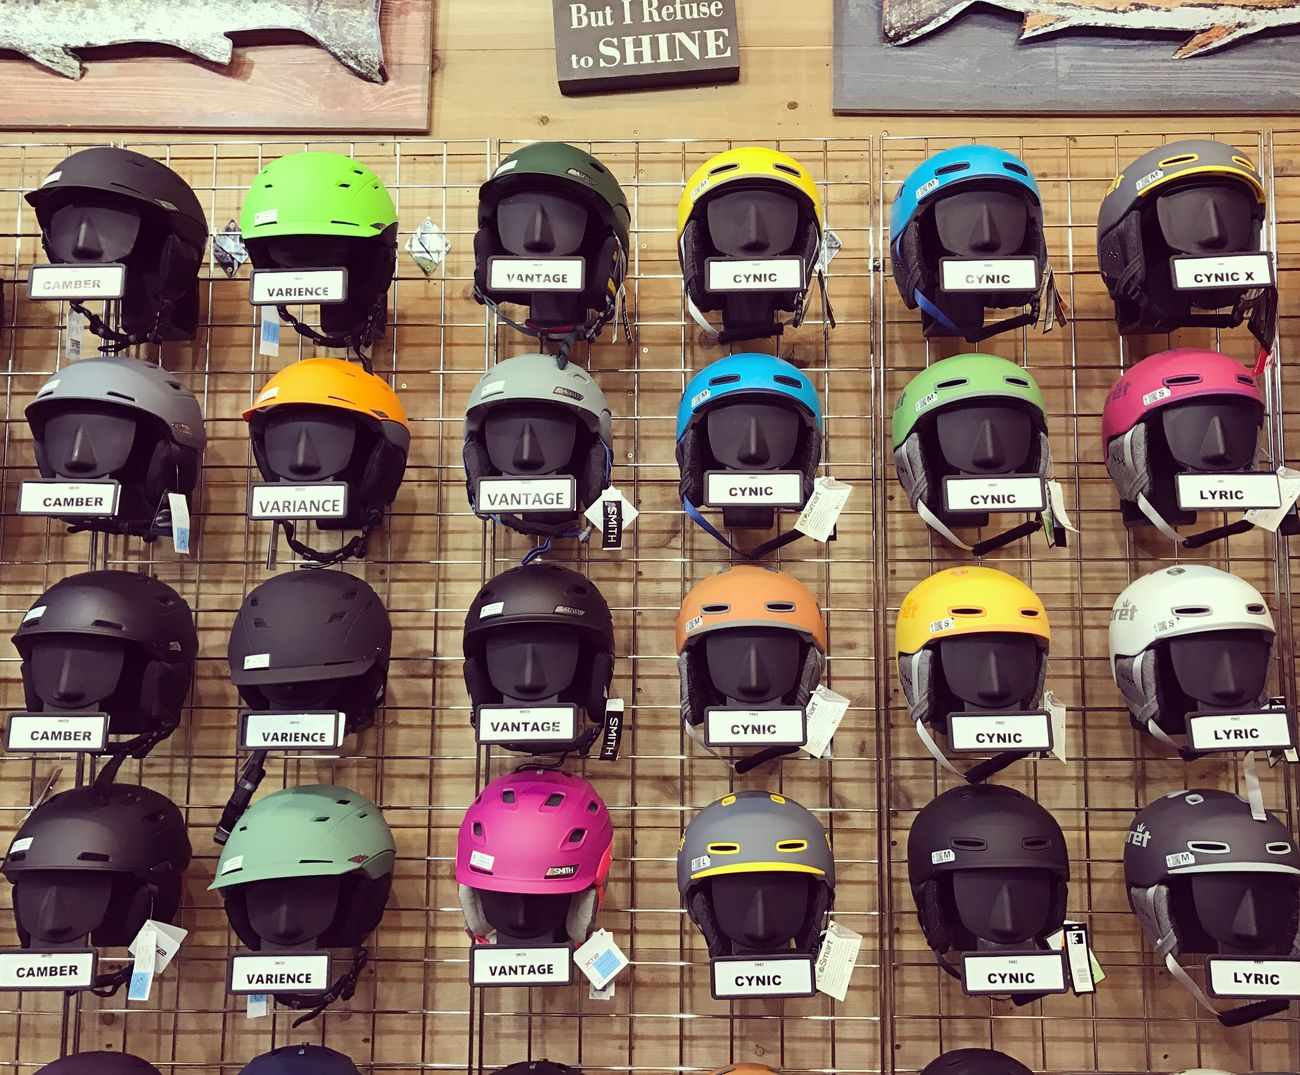 Pick up your color!! Full Frame Built Structure Backgrounds No People Architecture Indoors  Day Helmet Skiing Colors Choice